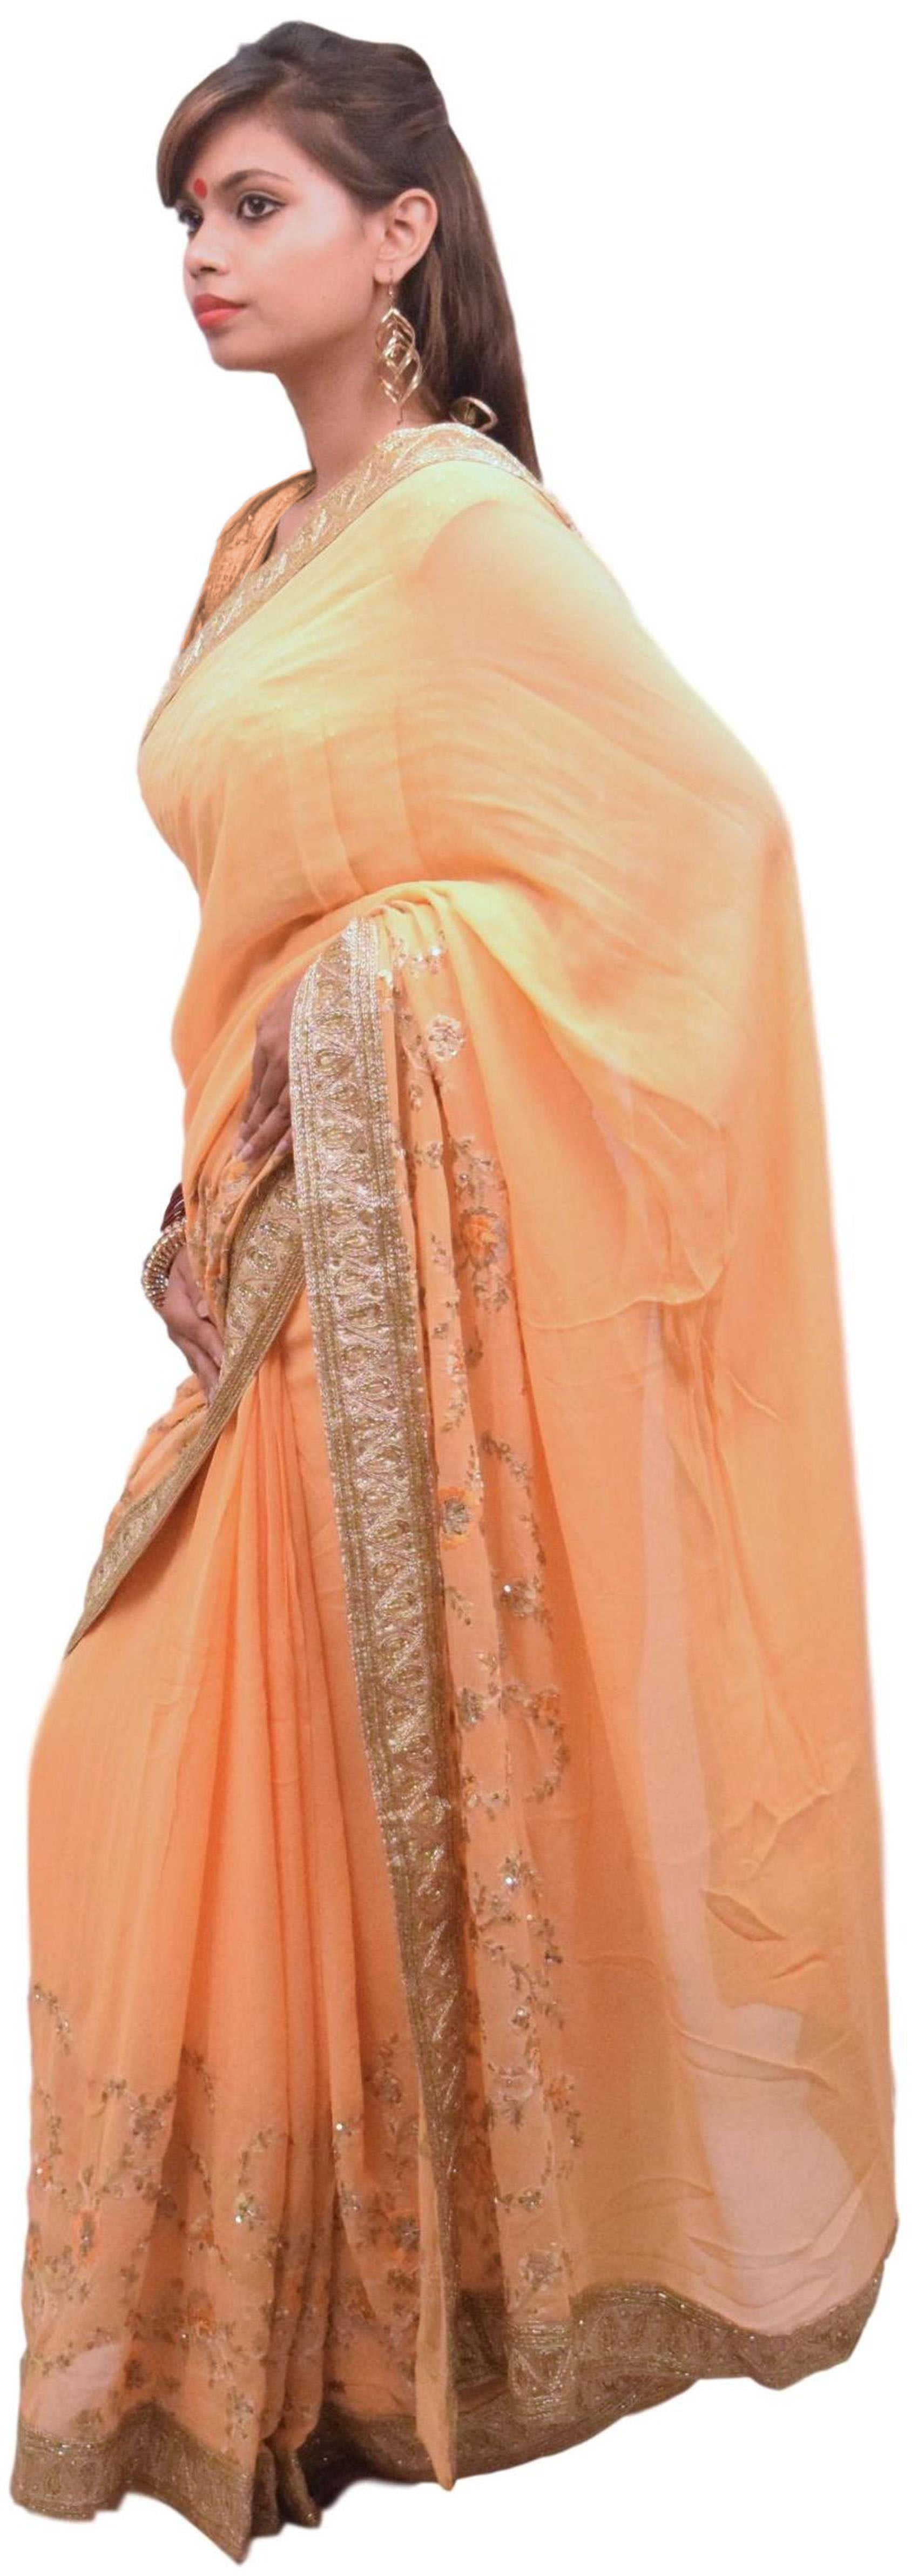 Peach Designer Wedding Partywear Ethnic Bridal Georgette (Viscos) Sequence Beads Zari Thread Cutdana Bullion Stone Hand Embroidery Work Kolkata Women Saree Sari E205